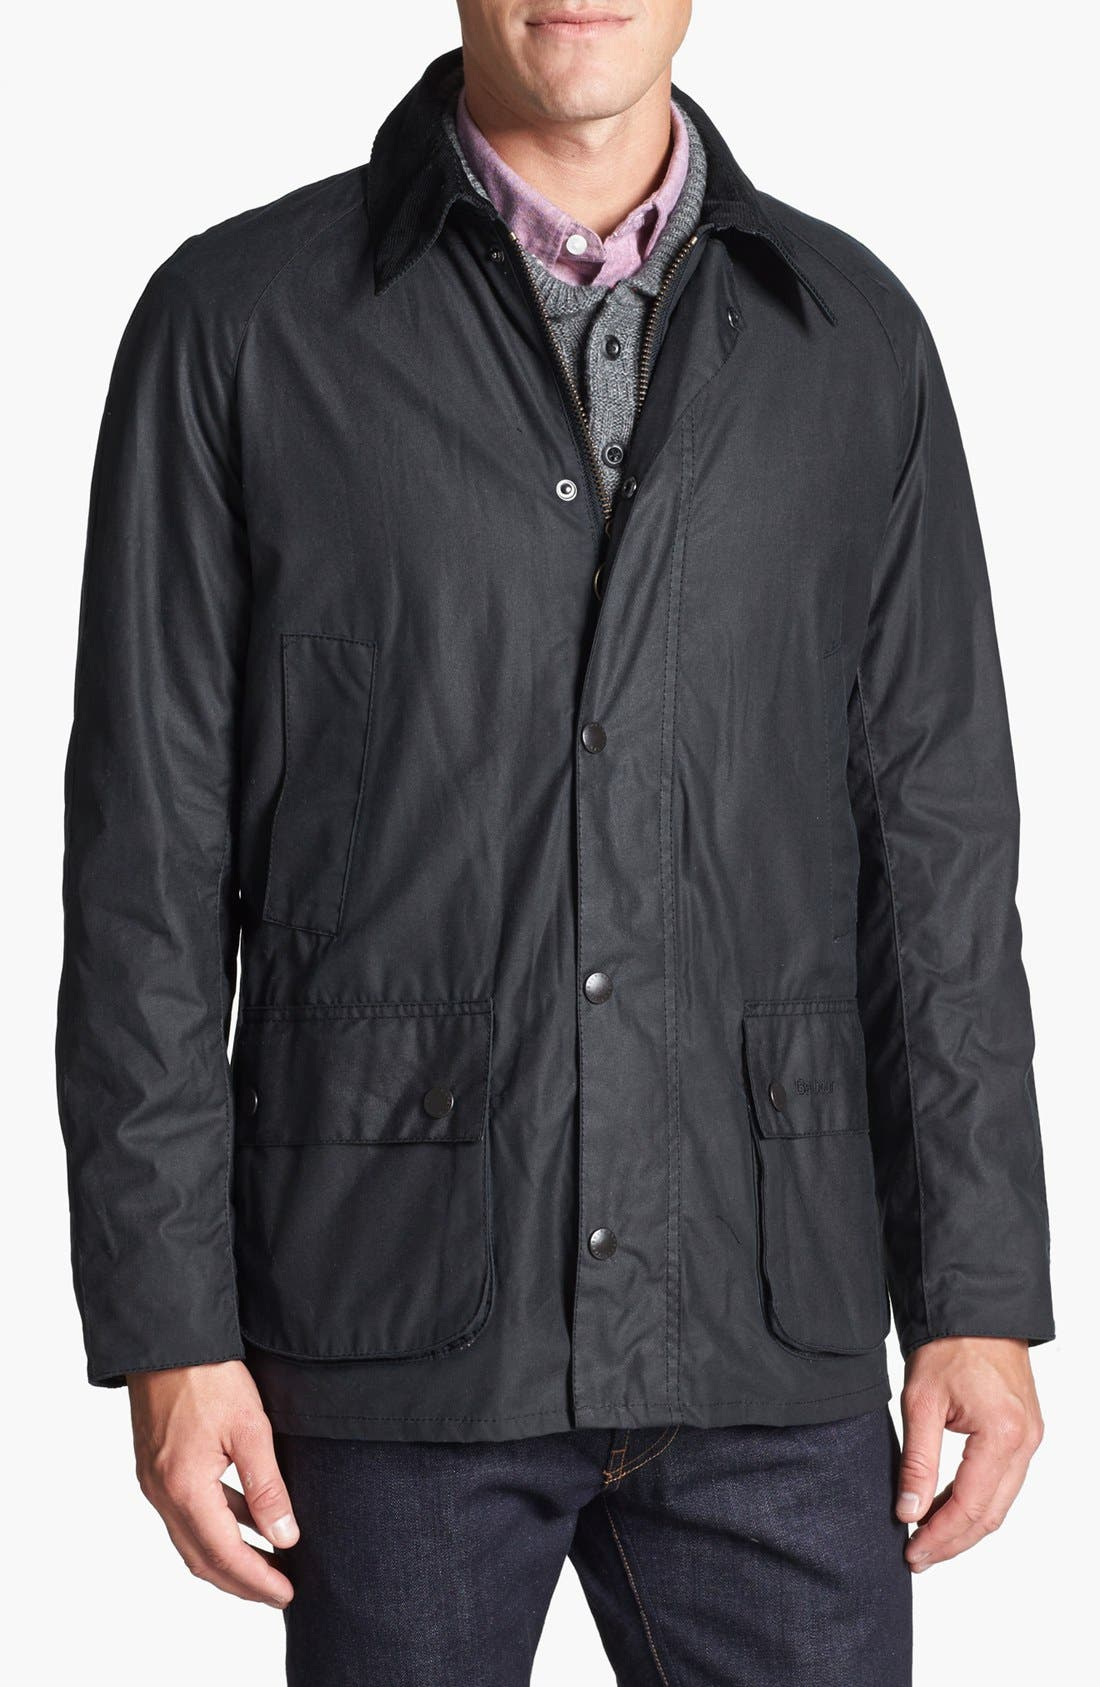 Alternate Image 1 Selected - Barbour 'Ashby' Regular Fit Waterproof Jacket